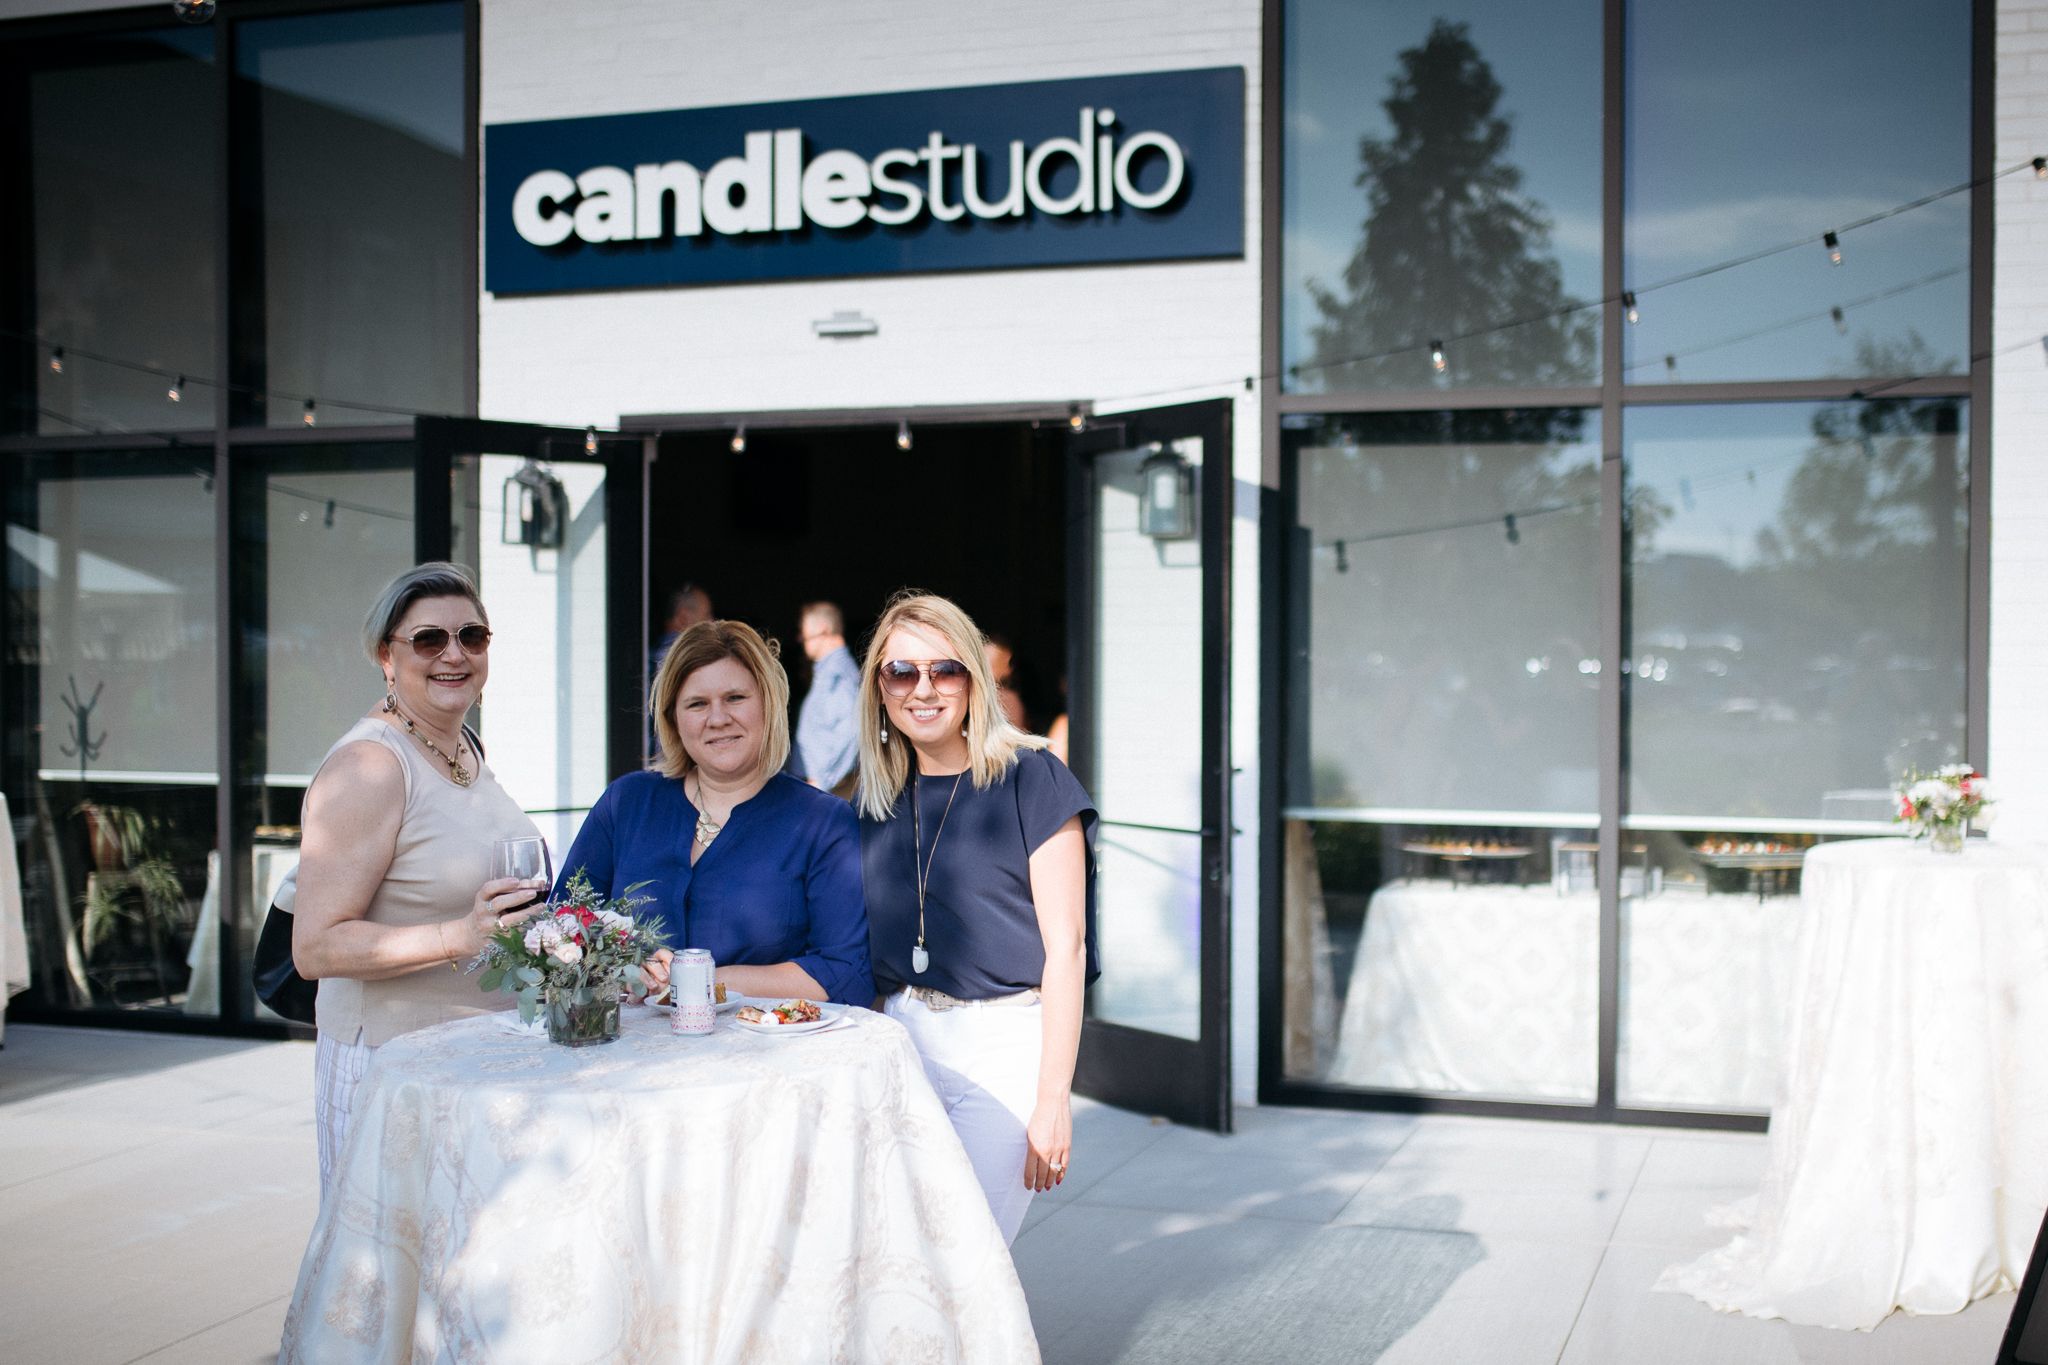 Mwypasek_Thurs_Therapy_The Candle Store_304_20190711_MWP_1771.jpg